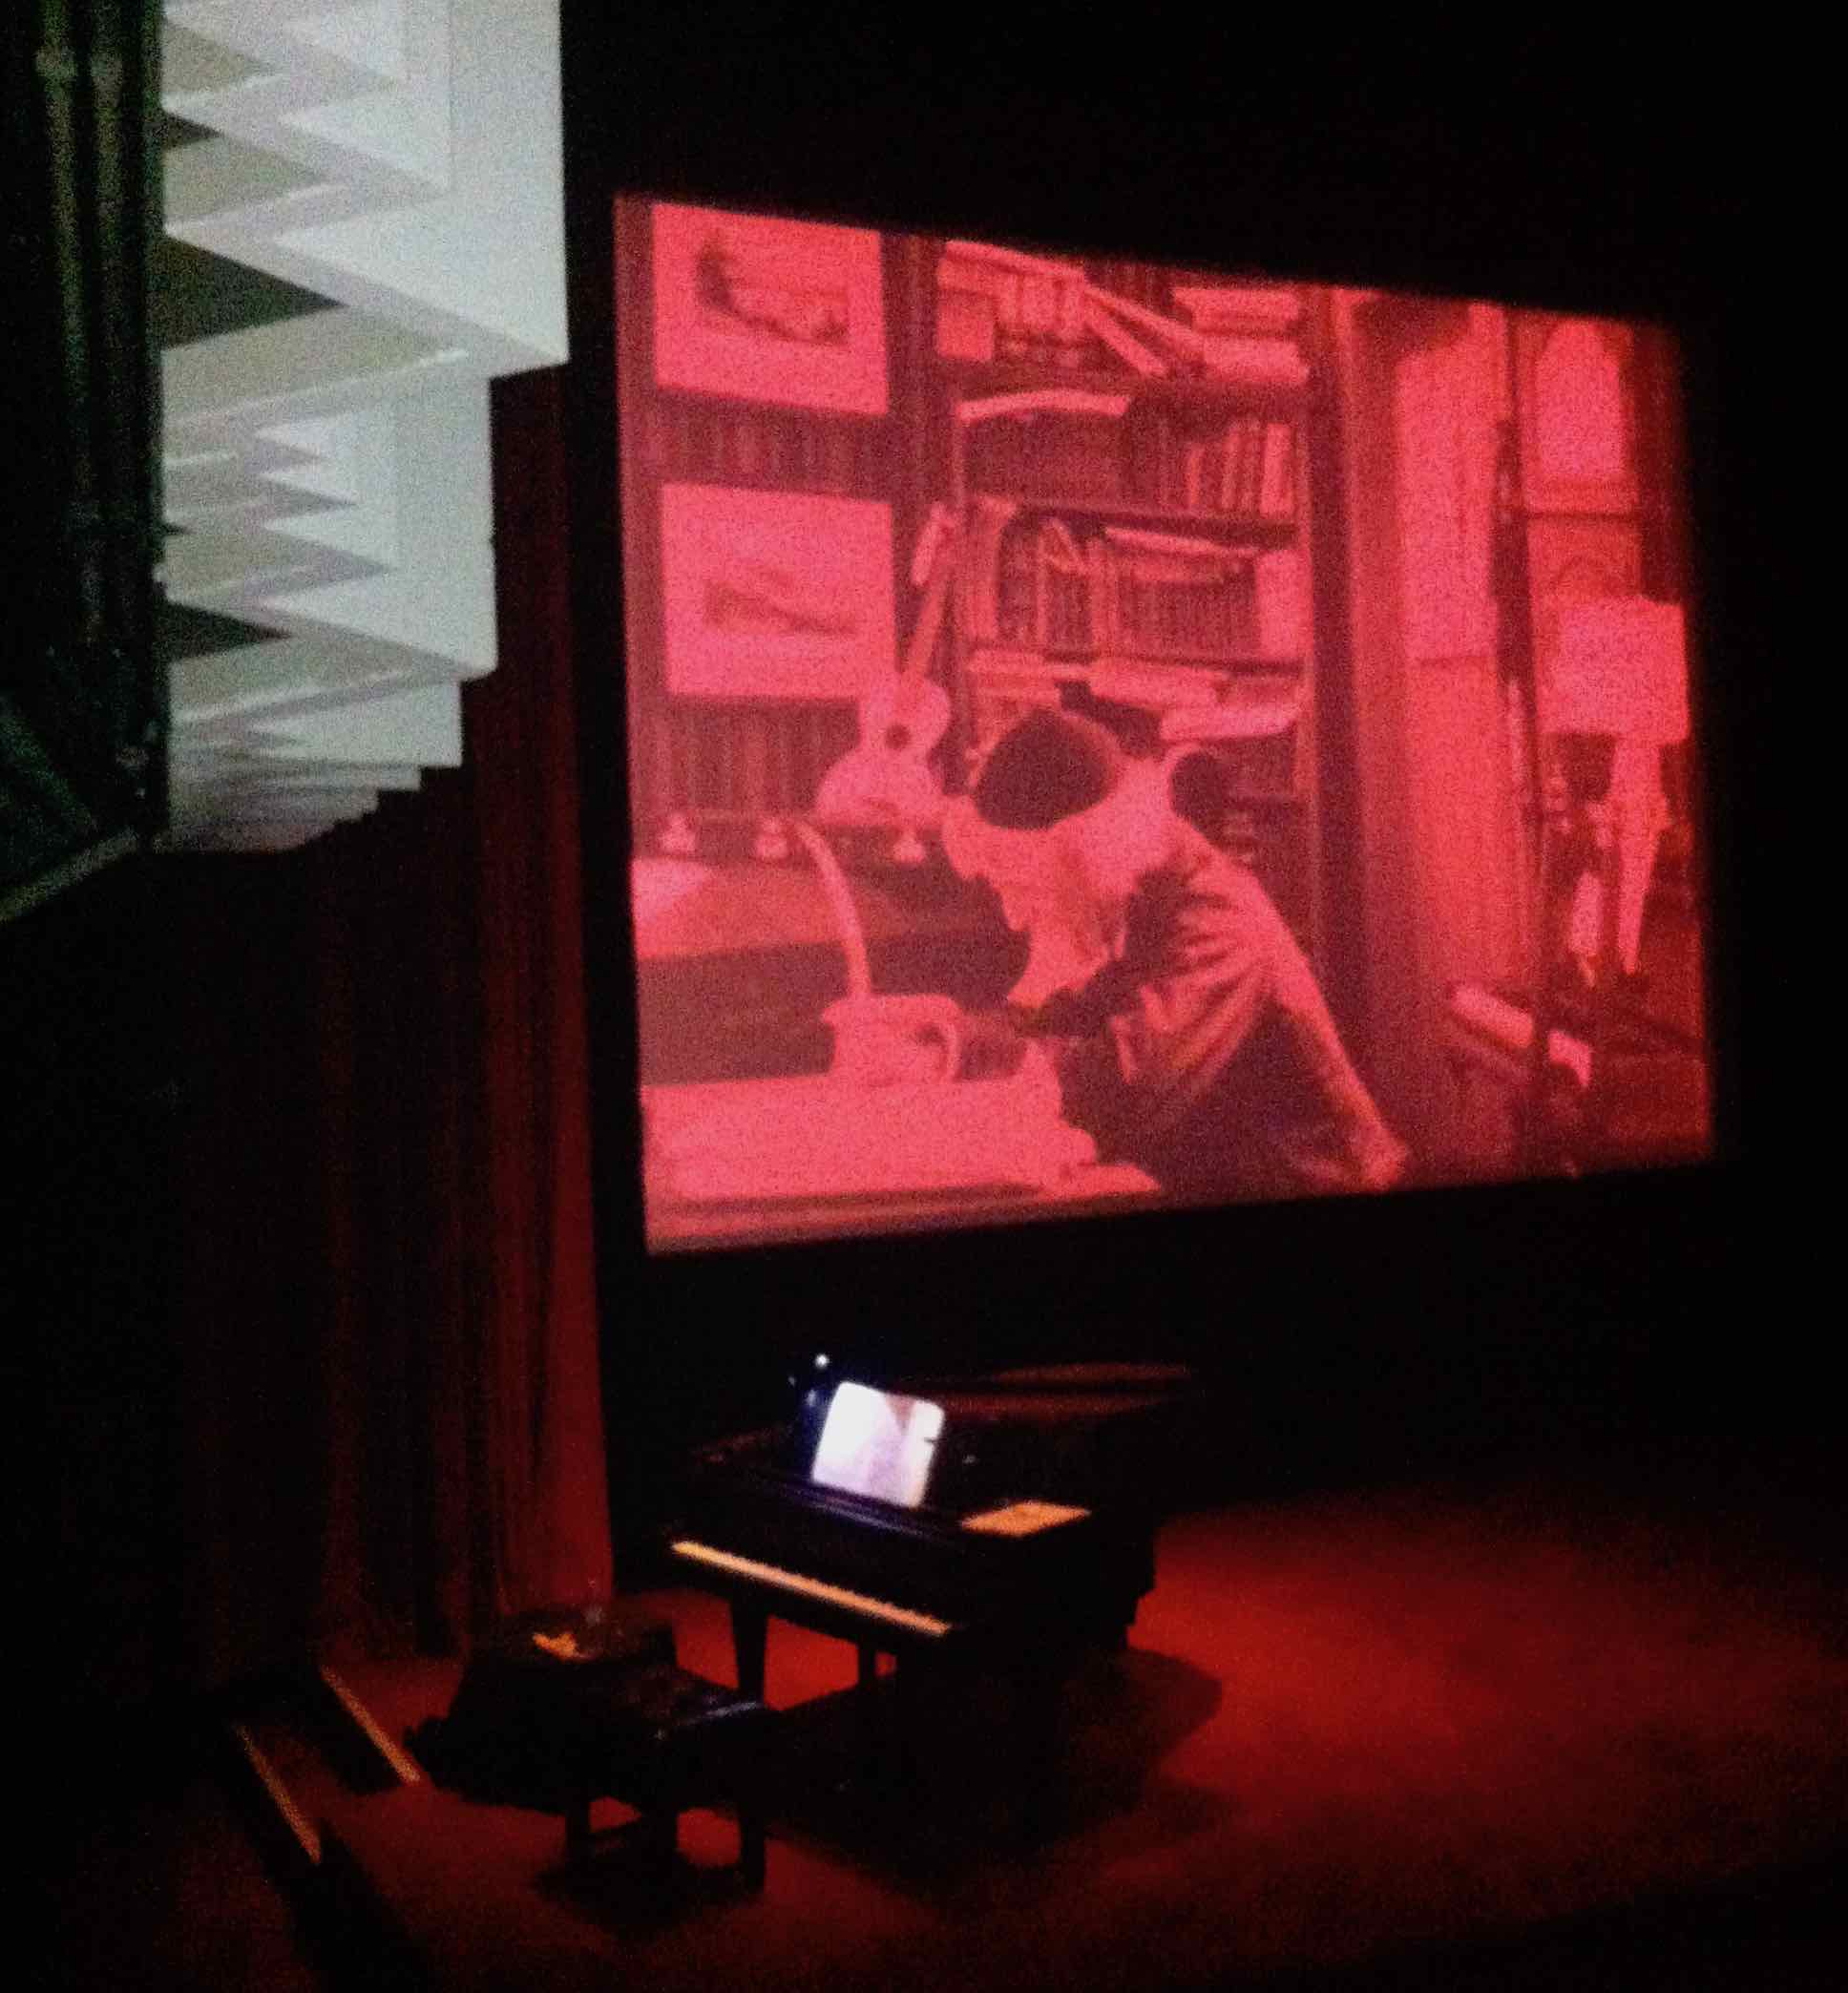 Piano at Barbican Centre's Cinema 1, before the  Richard Wagner  silent film screening, Jan 2014